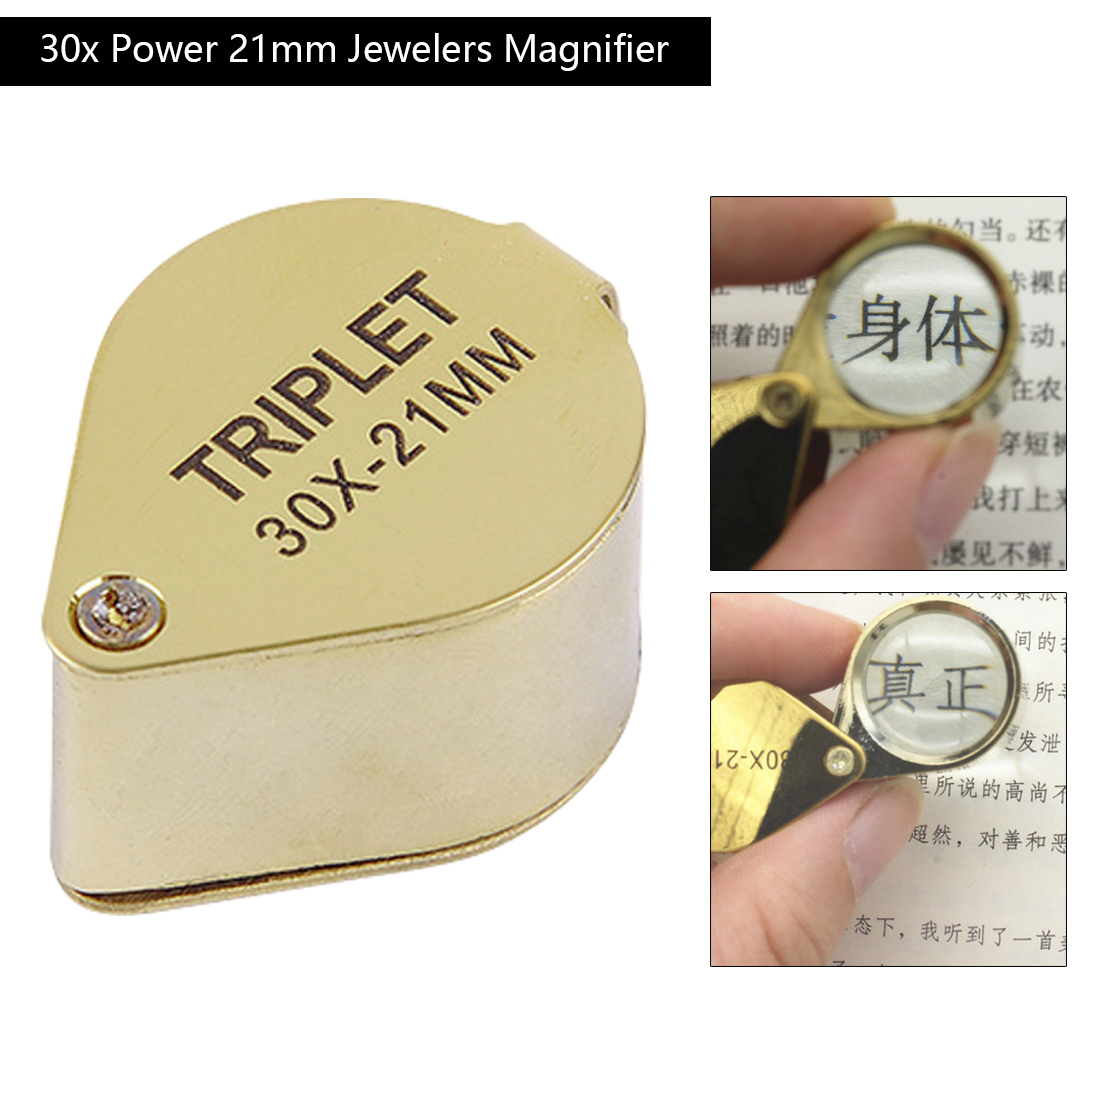 HTB1c5OrXIrrK1RjSspaq6AREXXaH Portable 30X Power 21mm Jewelers Magnifier Gold Eye Loupe Jewelry Store Magnifying Glass